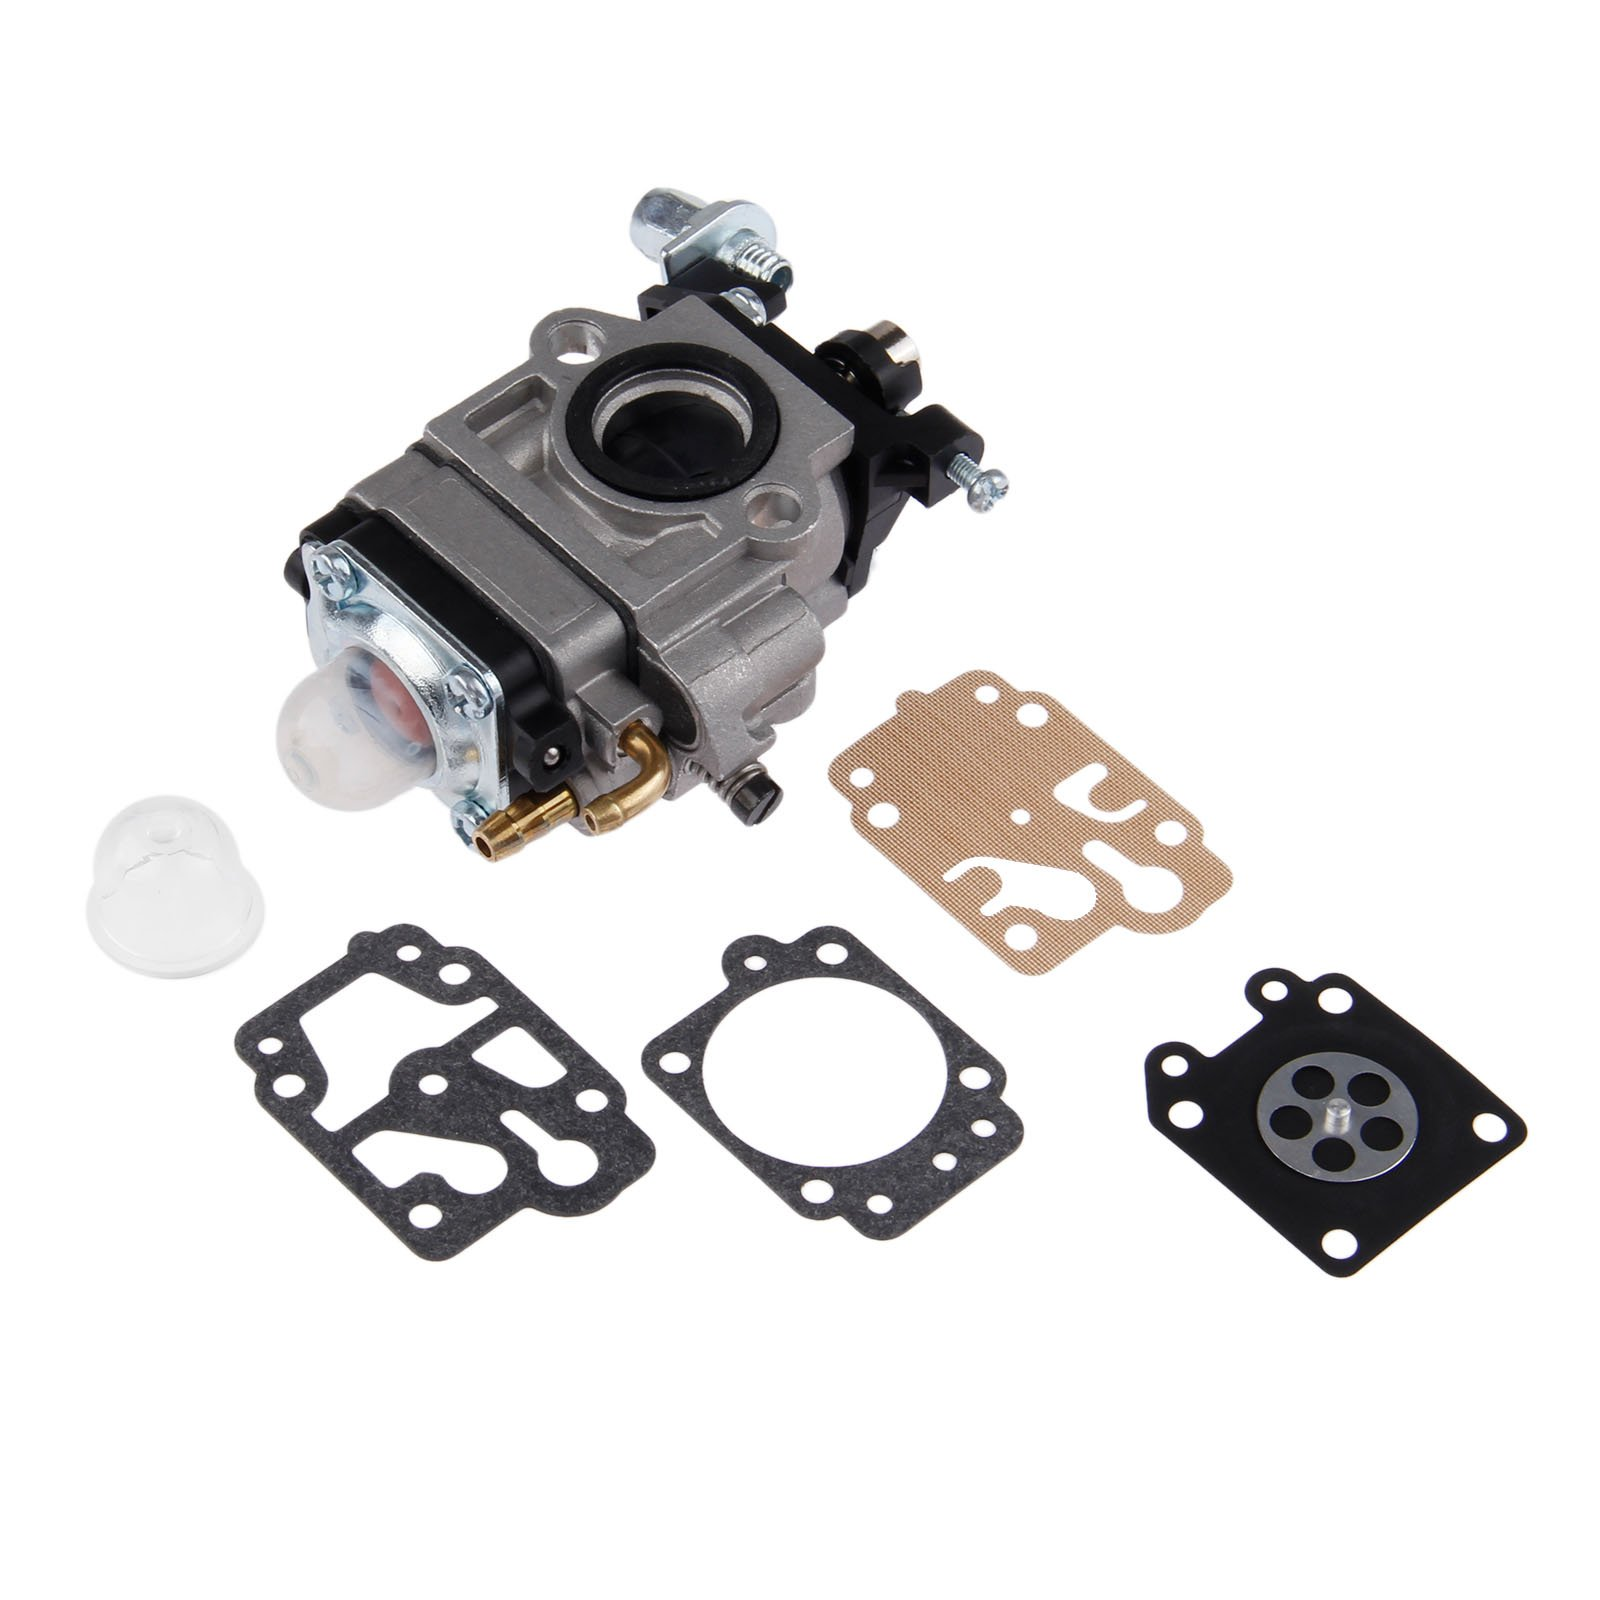 For MP15 43CC 52CC CG430 CG520 BC430 BC520 Chinese Brush Cutter Grass Trimmer Carburetor with Repair Kits